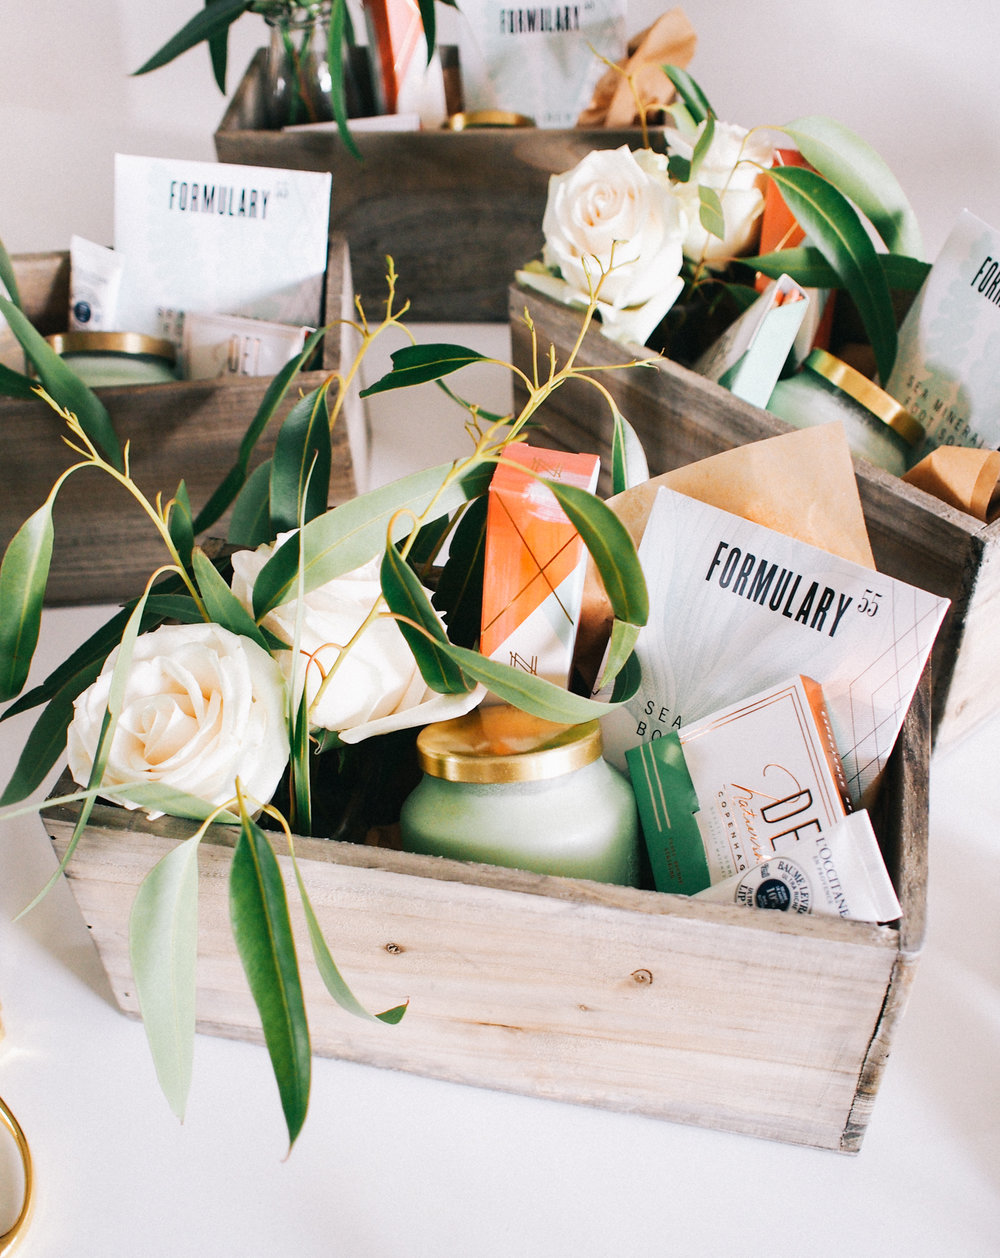 How to create simple gift boxes for any occasion | A Fabulous Fete